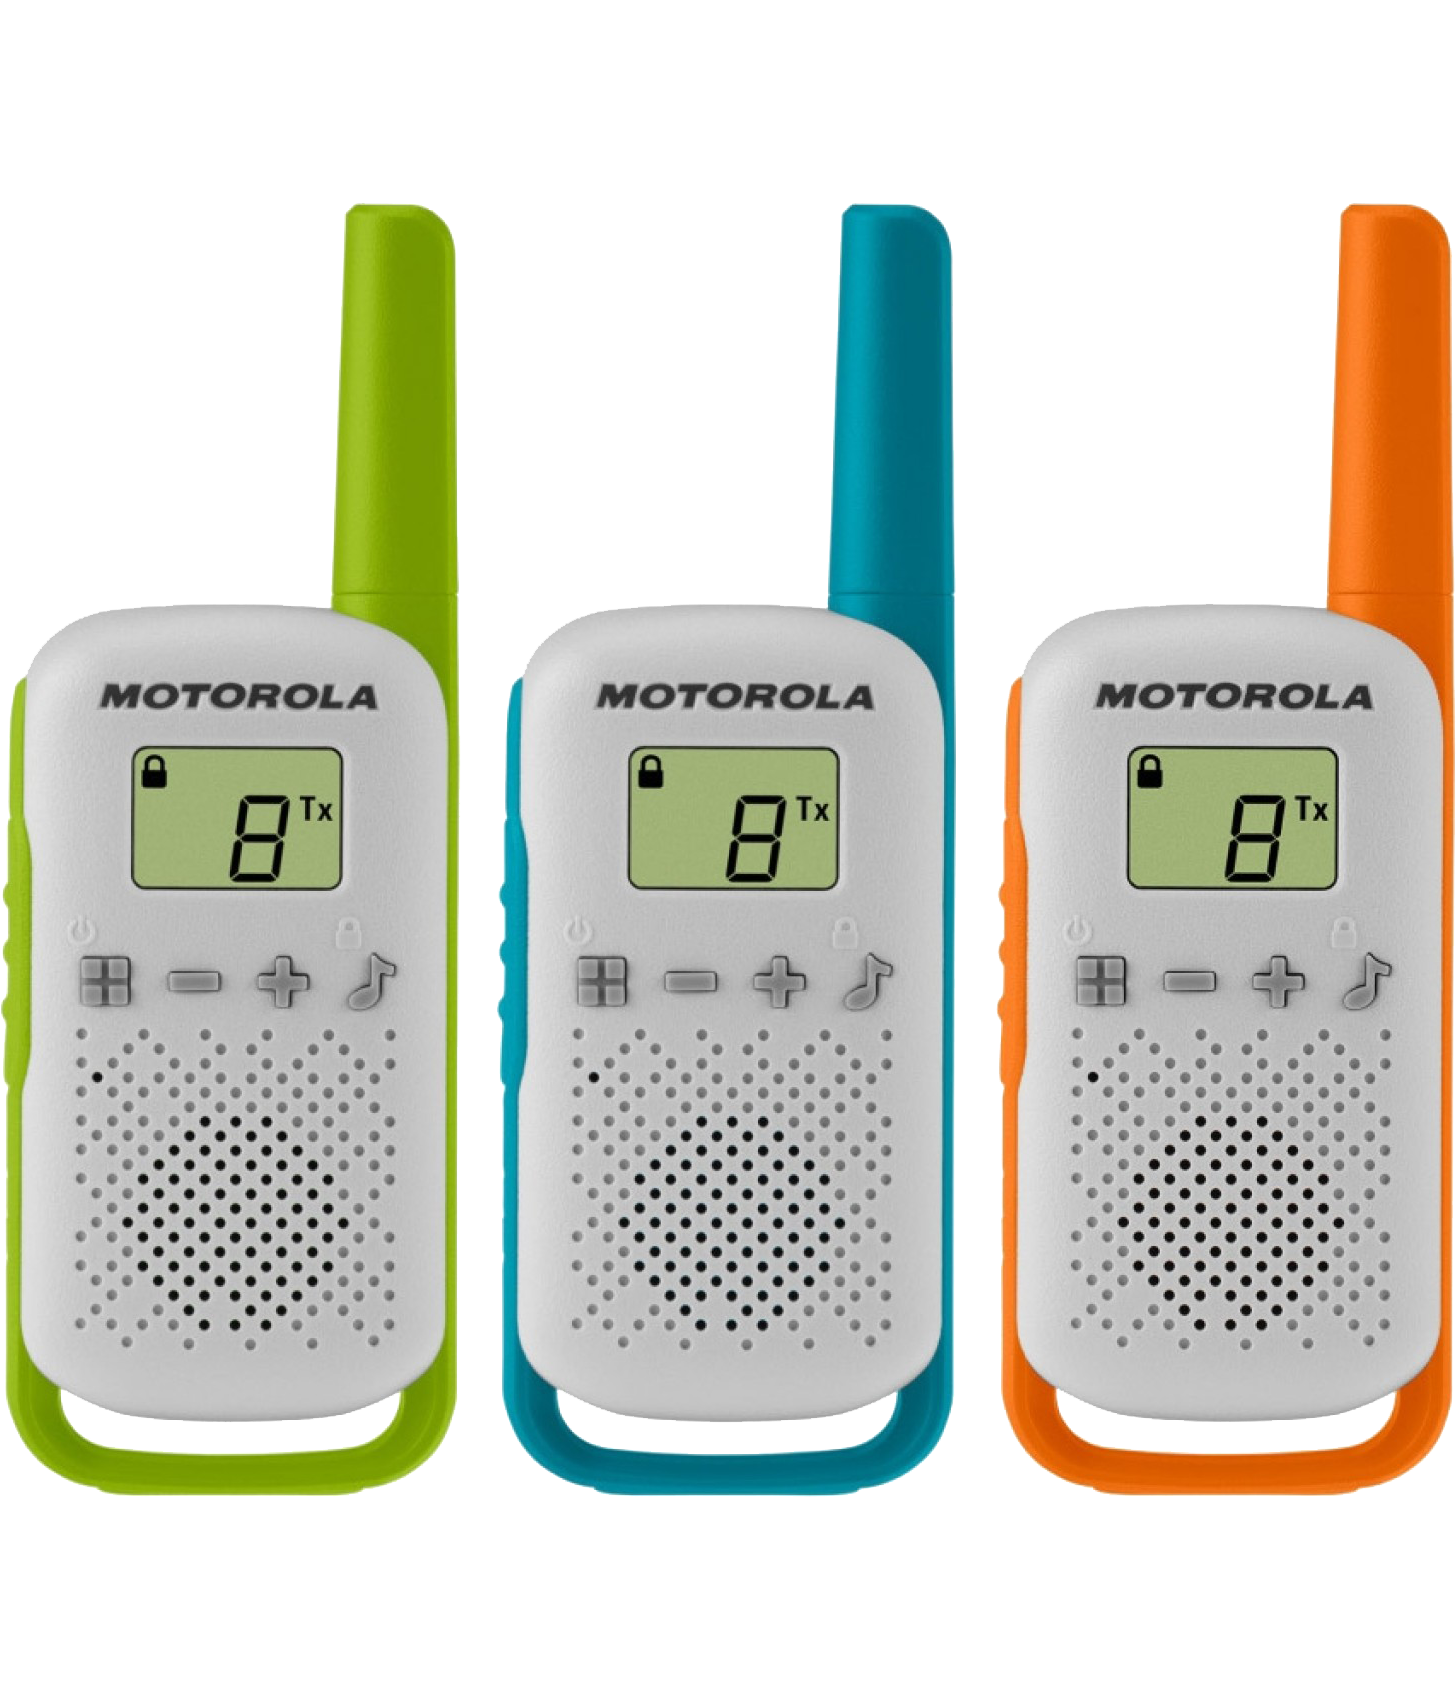 Motorola TALKABOUT T42 Triple Pack featured image